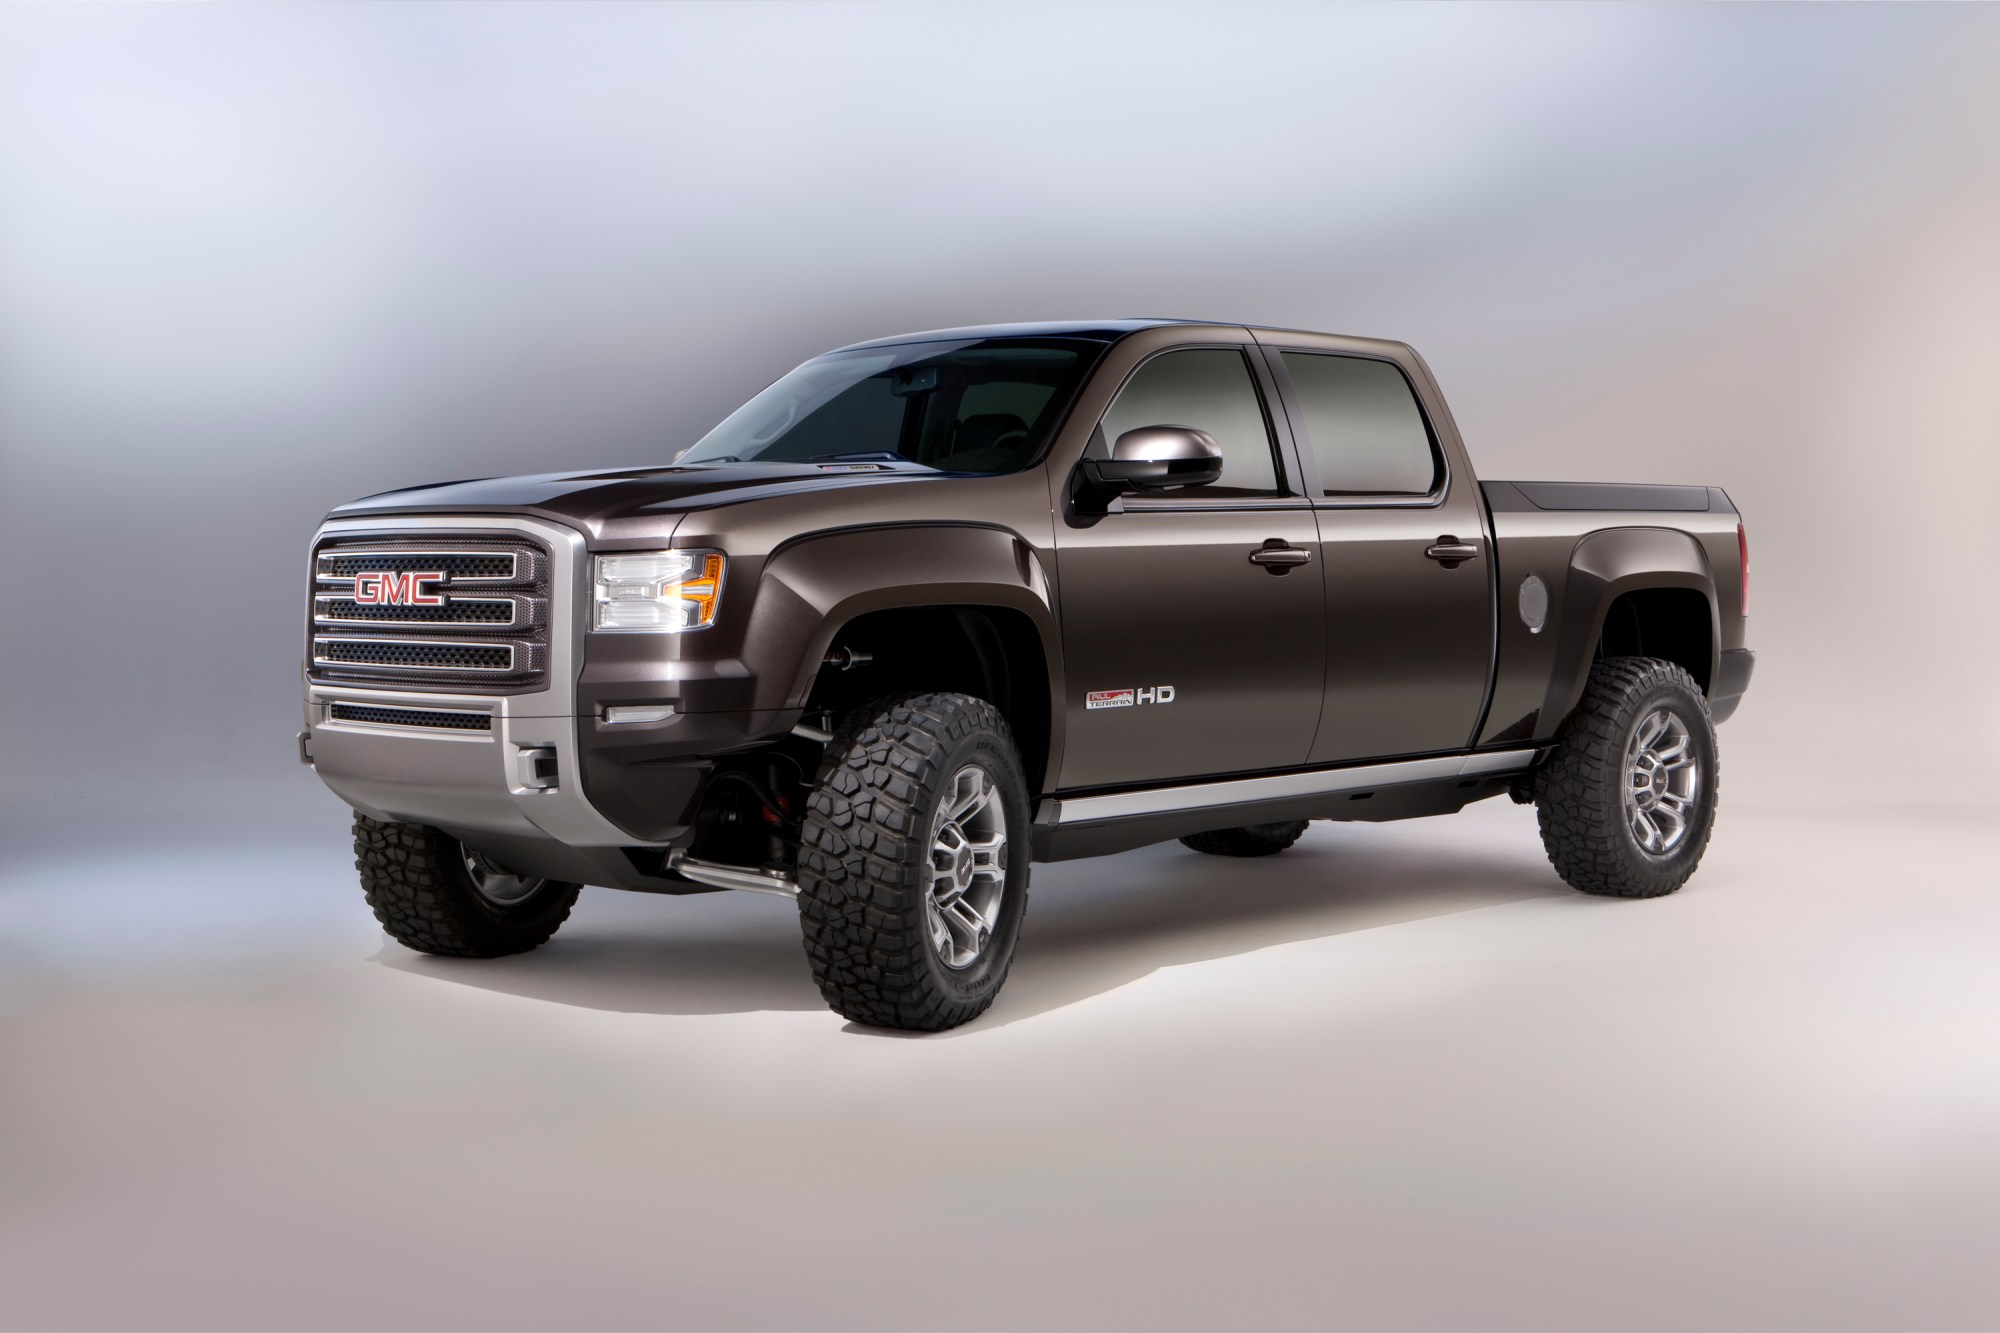 hight resolution of 2011 gmc sierra all terrain hd concept